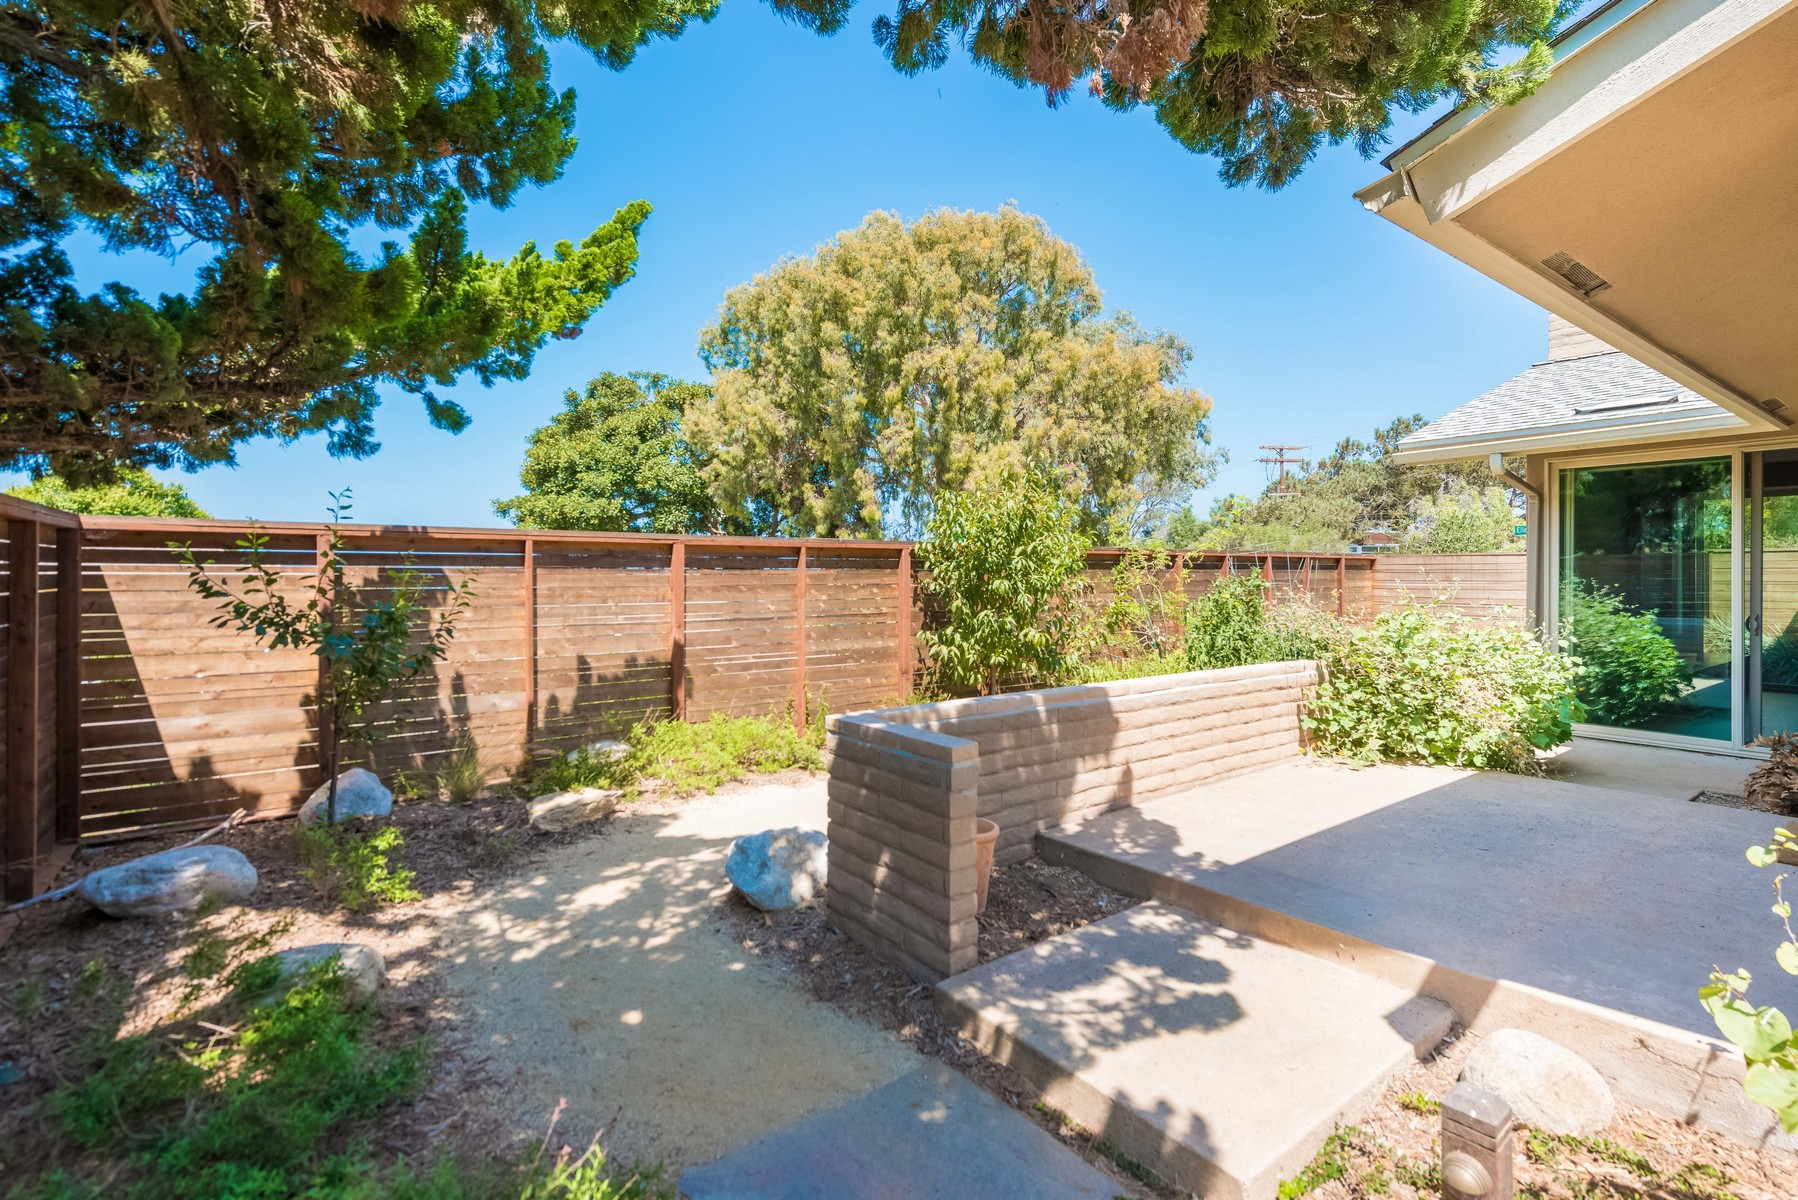 Additional photo for property listing at 2505 Ellentown Road  La Jolla, Калифорния 92037 Соединенные Штаты